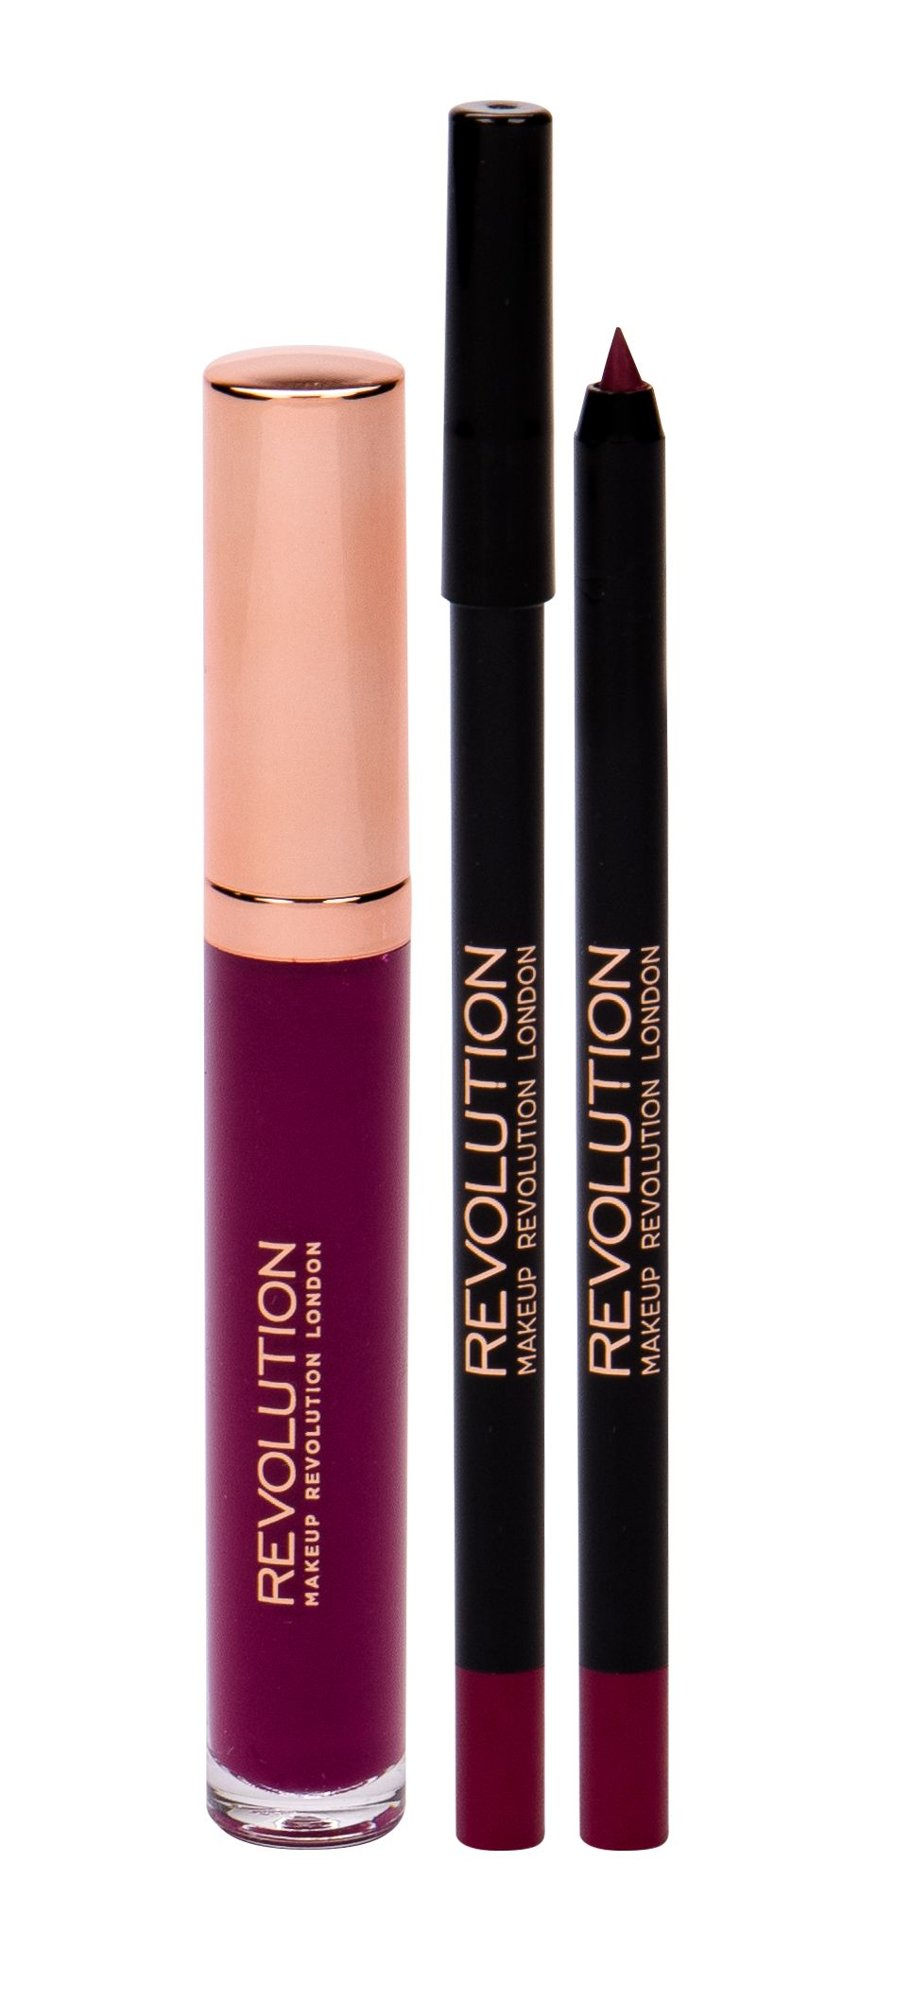 Priemonė lūpoms Makeup Revolution London Retro Luxe